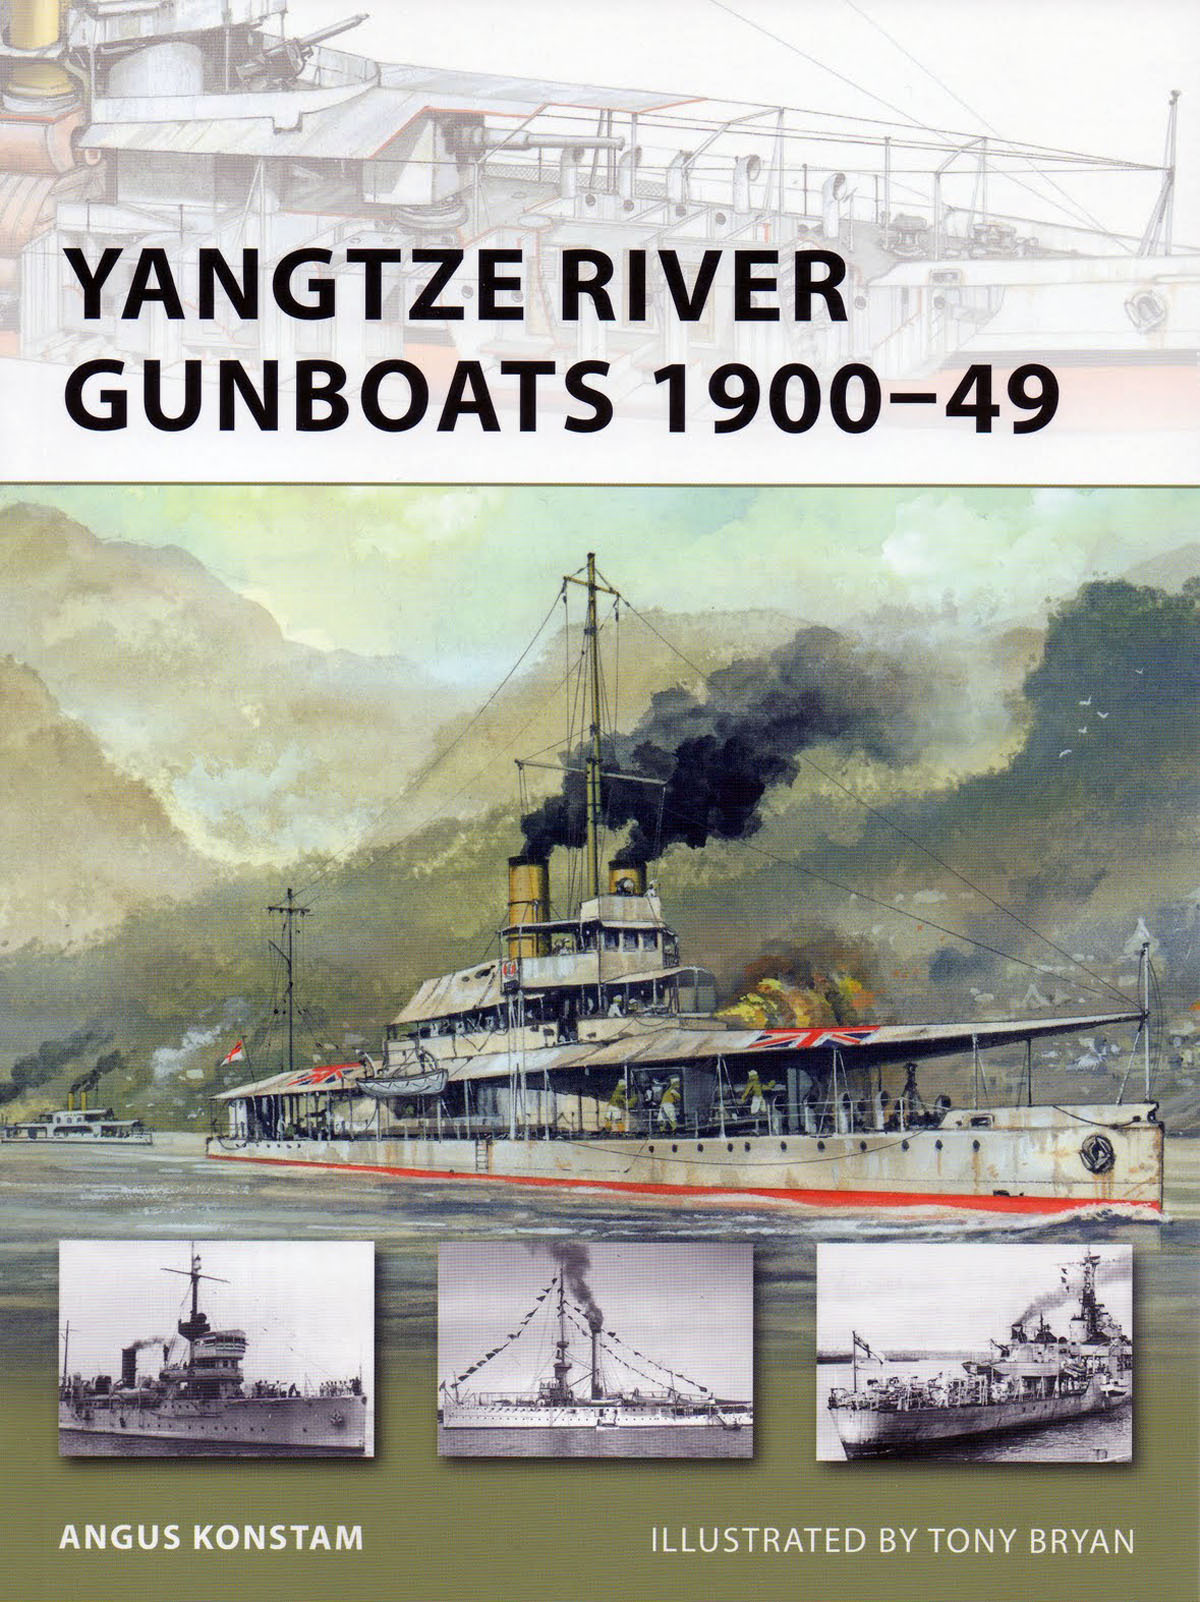 BOOK REVIEW: Yangtze River Gunboats 1900-49 By Angus Konstam, Illustrated by Tony Bryan, Osprey Publishing, Oxford, UK (2011)  Reviewed by Captain Roger F. Jones, USN (Ret) This small gem is one of Osprey's comprehensive series of books on military history, units, and warriors. Despite the date in the book's title, the history of western nations' gunboats patrolling the Yangtze River goes back to June 1858, upon signature of the Treaty of Tientsin. (read the full review)